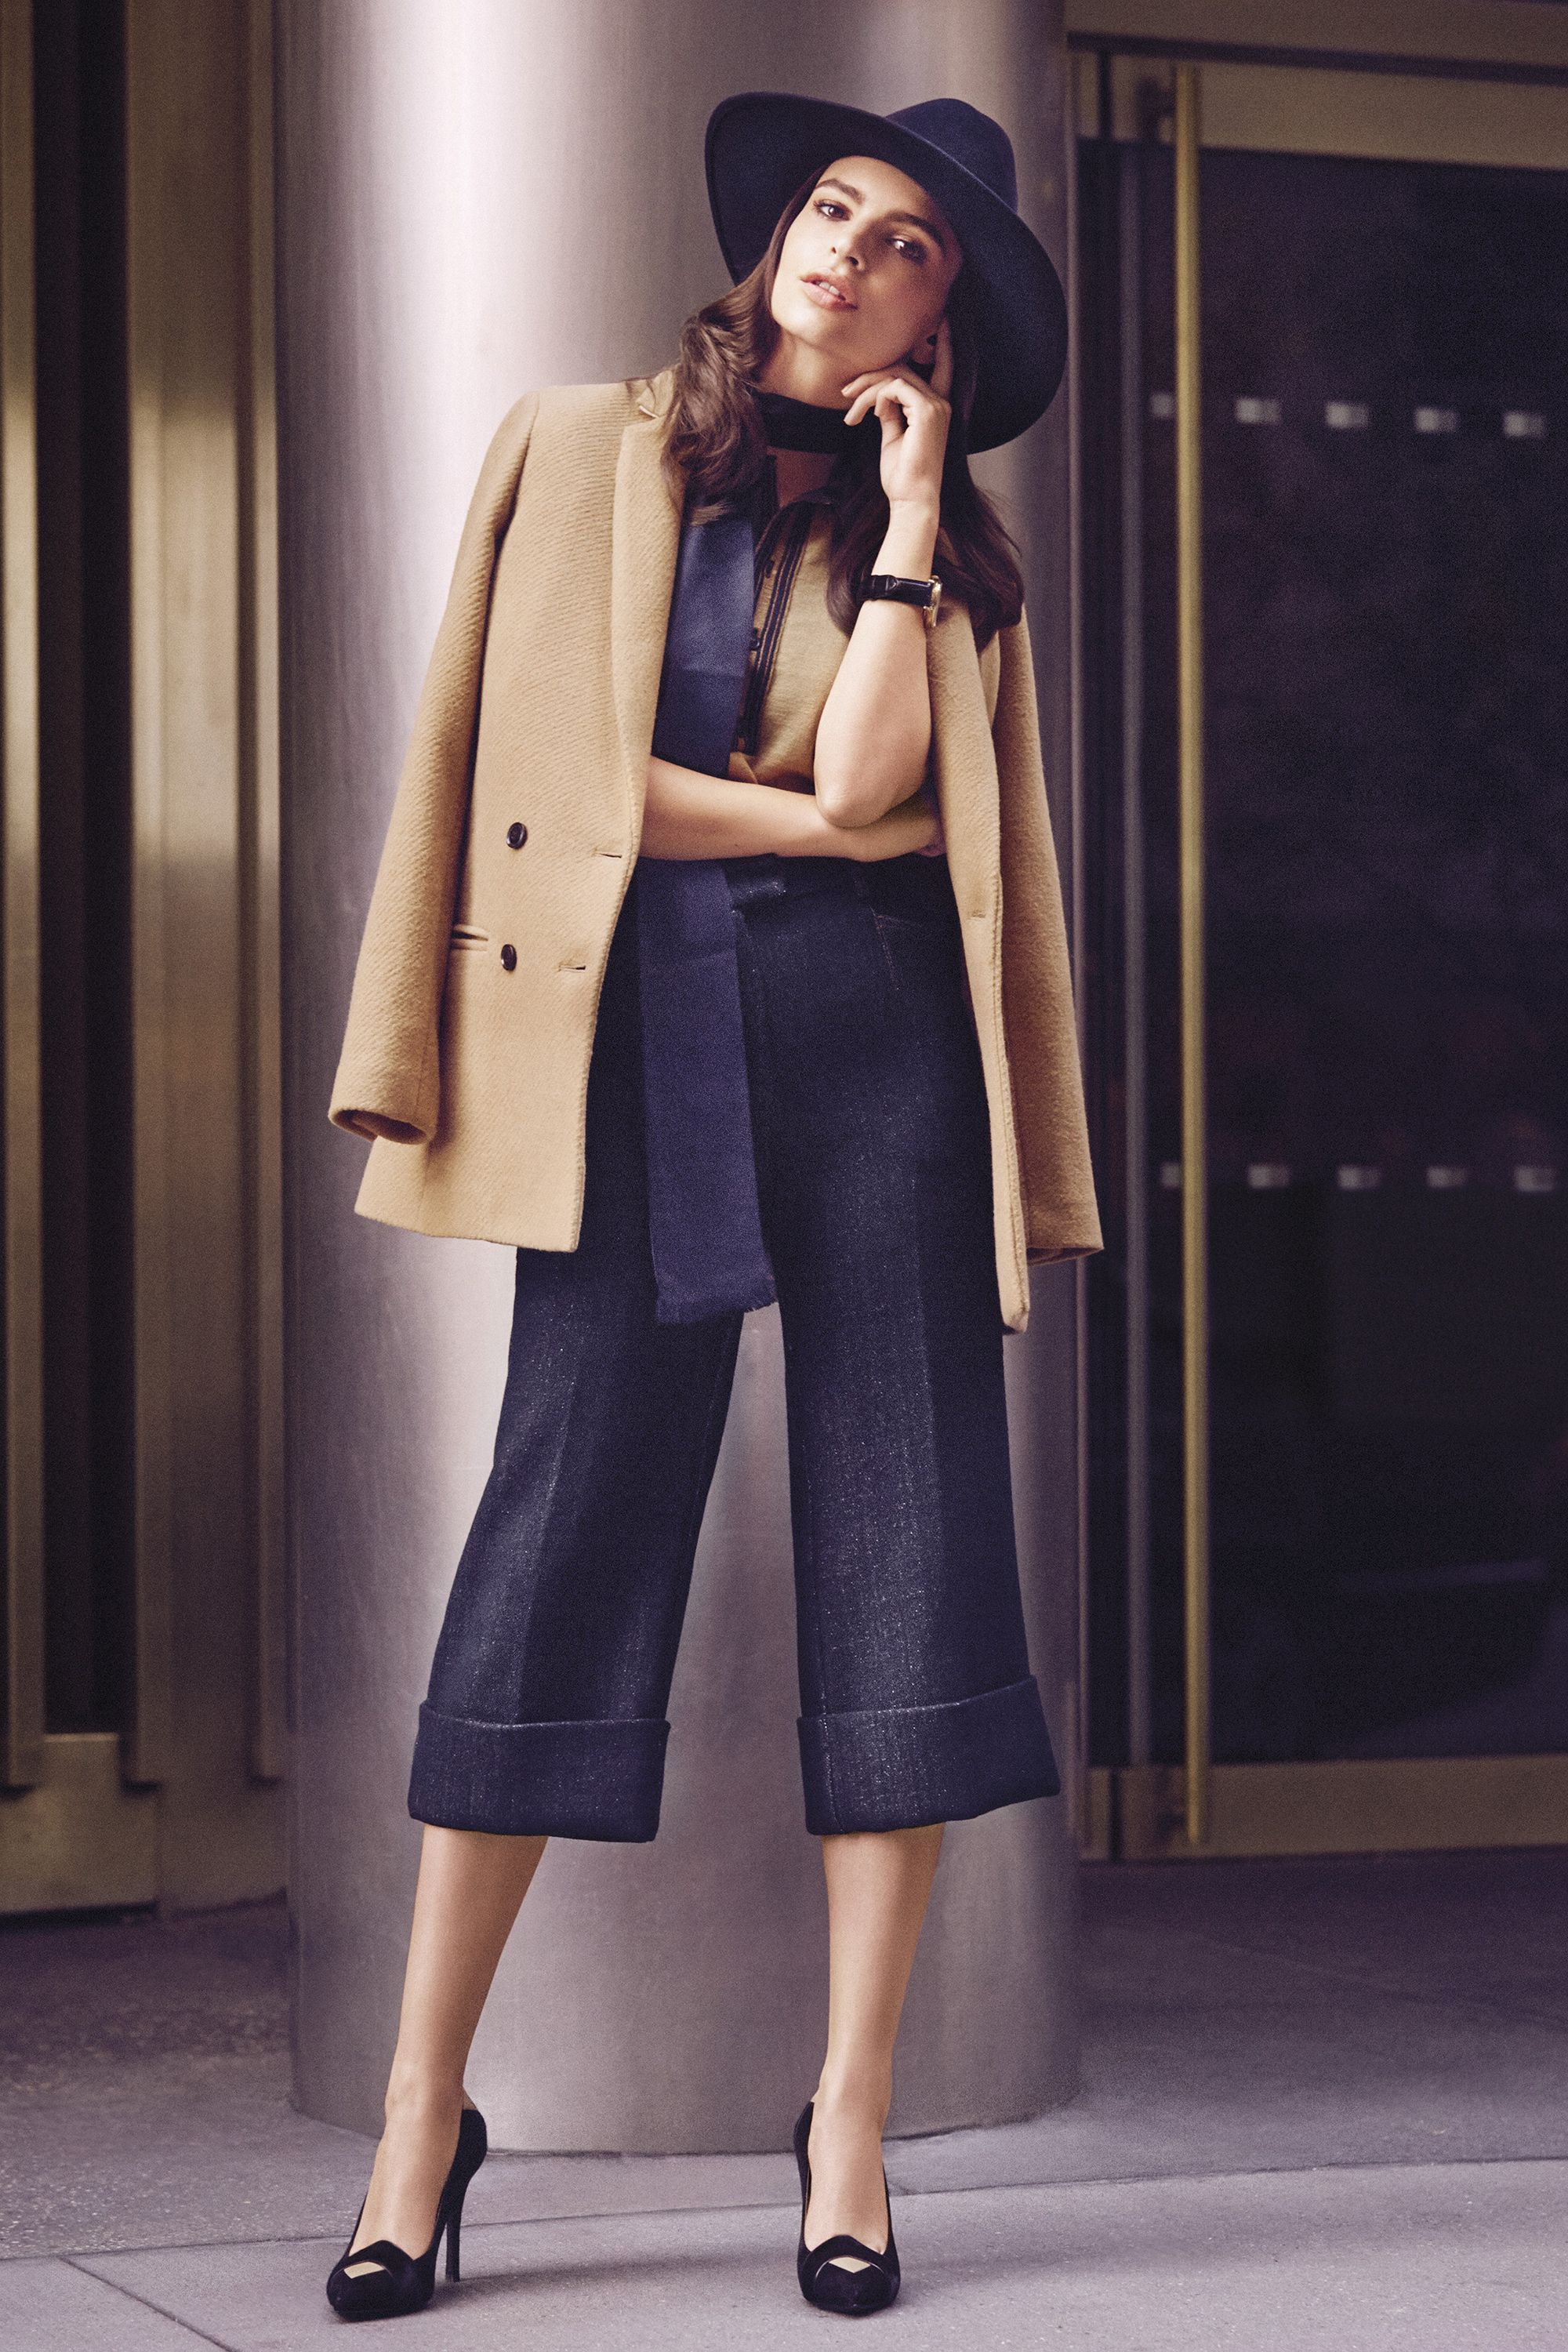 <p><strong> Banana Republic </strong>blazer&#x3B; <strong>Hilfiger Collection</strong> sweater and pants, <strong>Tommy Hilfiger </strong>stores&#x3B; <strong>Patricia Underwood</strong> hat&#x3B; <strong>Standen</strong> scarf, Barneys New York&#x3B; <strong>Bulova </strong>watch, Macy's&#x3B; <strong>Longchamp</strong> shoes. </p>